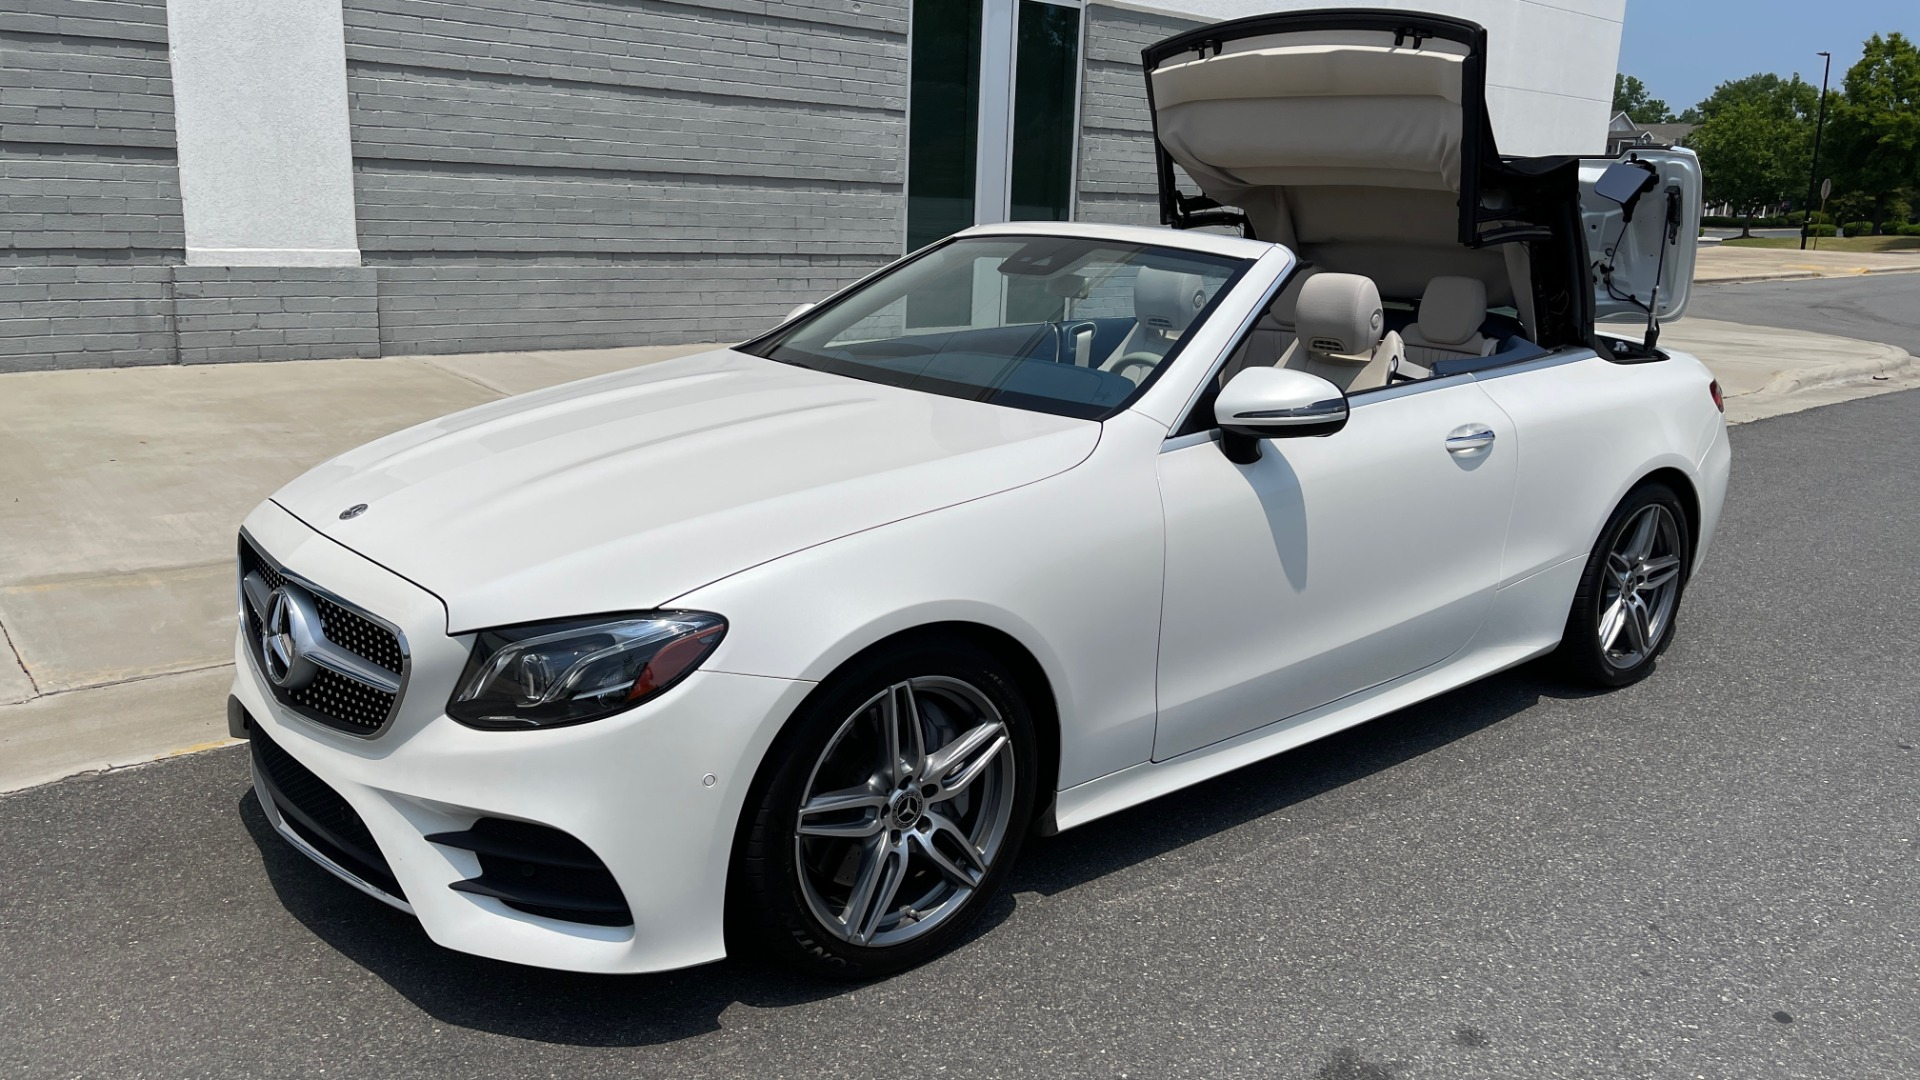 Used 2018 Mercedes-Benz E-CLASS E 400 CABRIOLET / PREM PKG / AMG LINE / NAV / REARVIEW for sale Sold at Formula Imports in Charlotte NC 28227 6